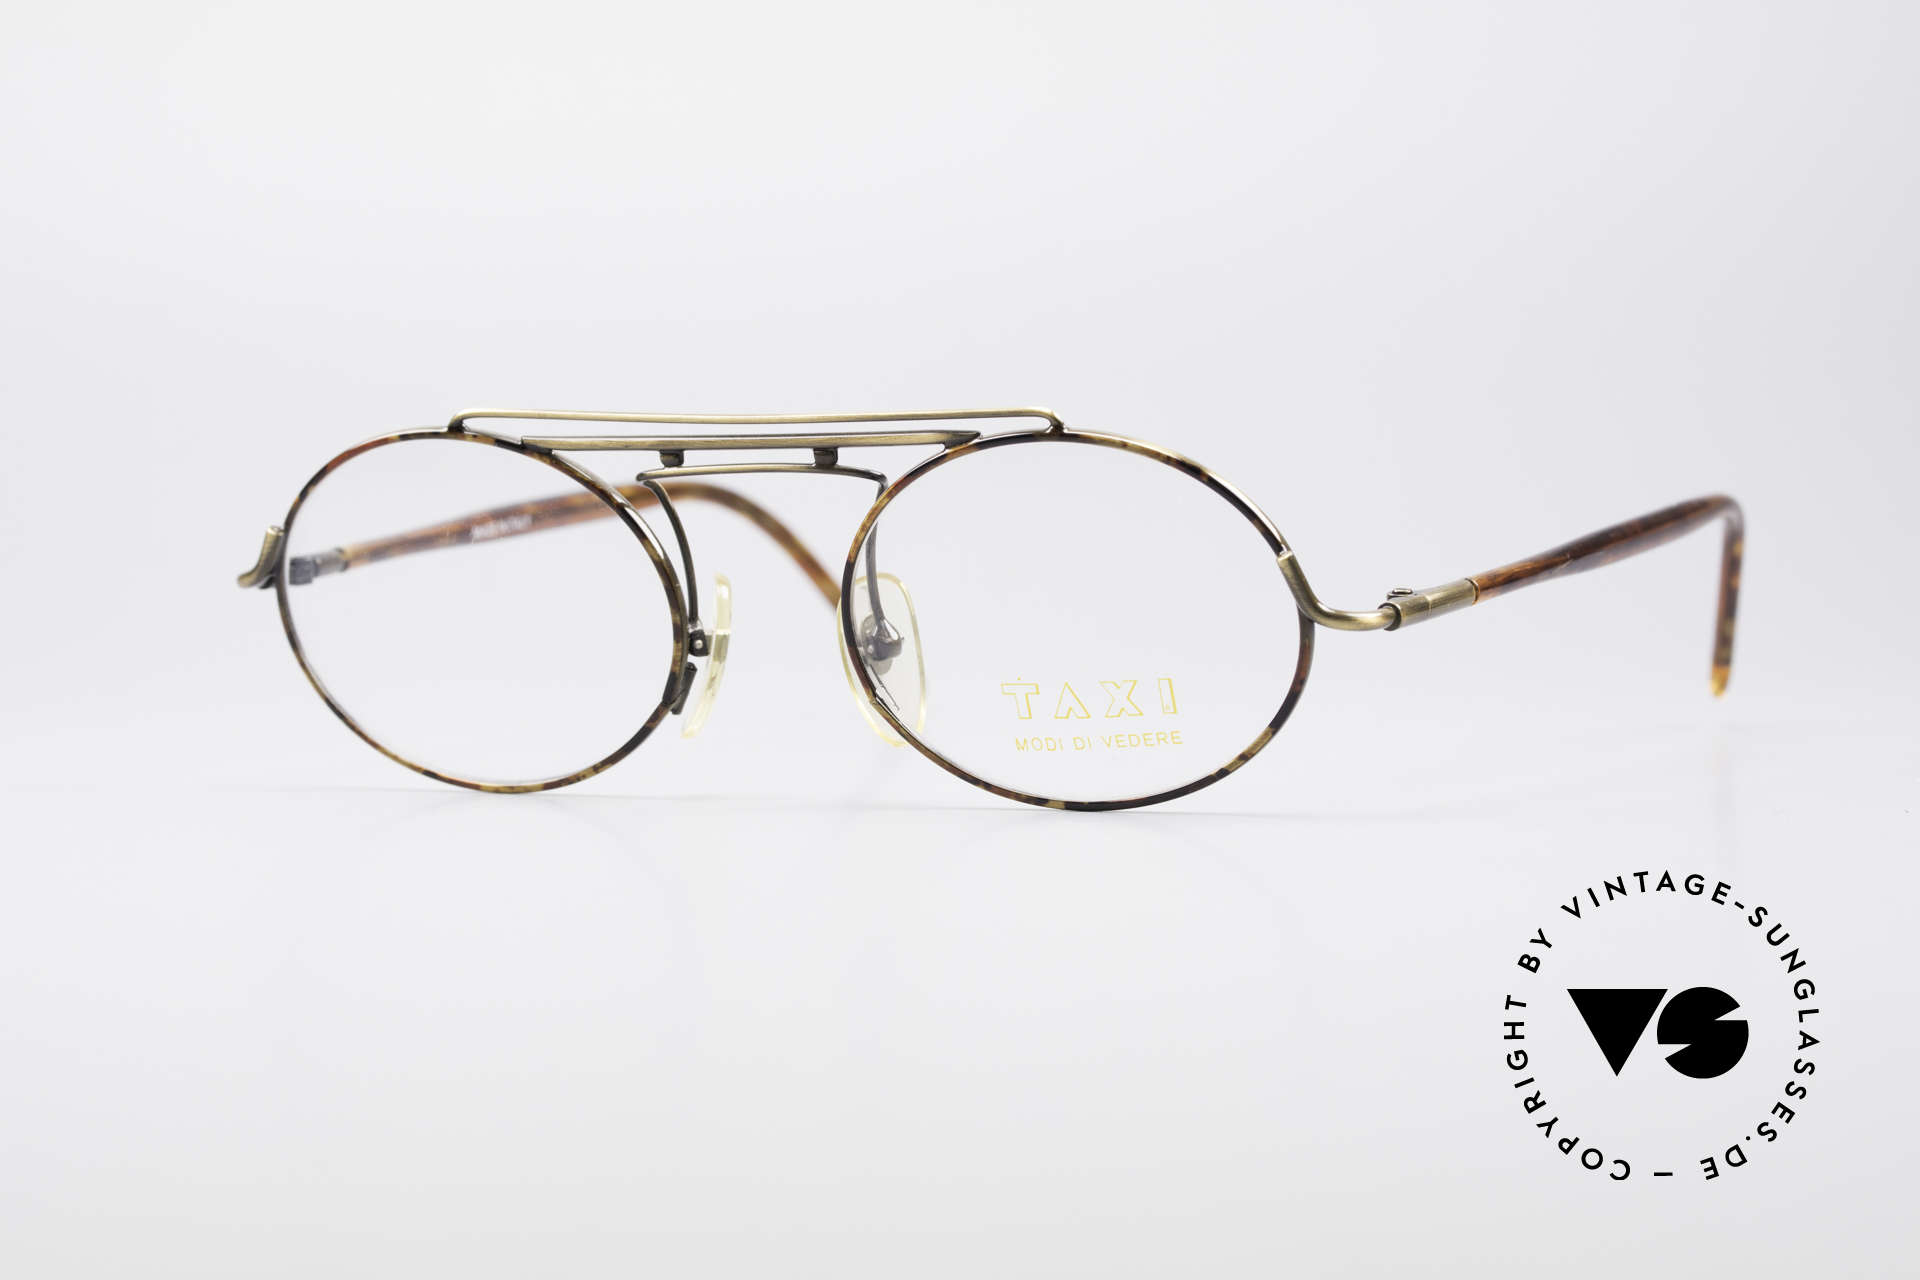 Taxi 2105 by Casanova 90's Vintage Designer Frame, vintage TAXI by Casanova eyeglasses of the early 90s, Made for Men and Women